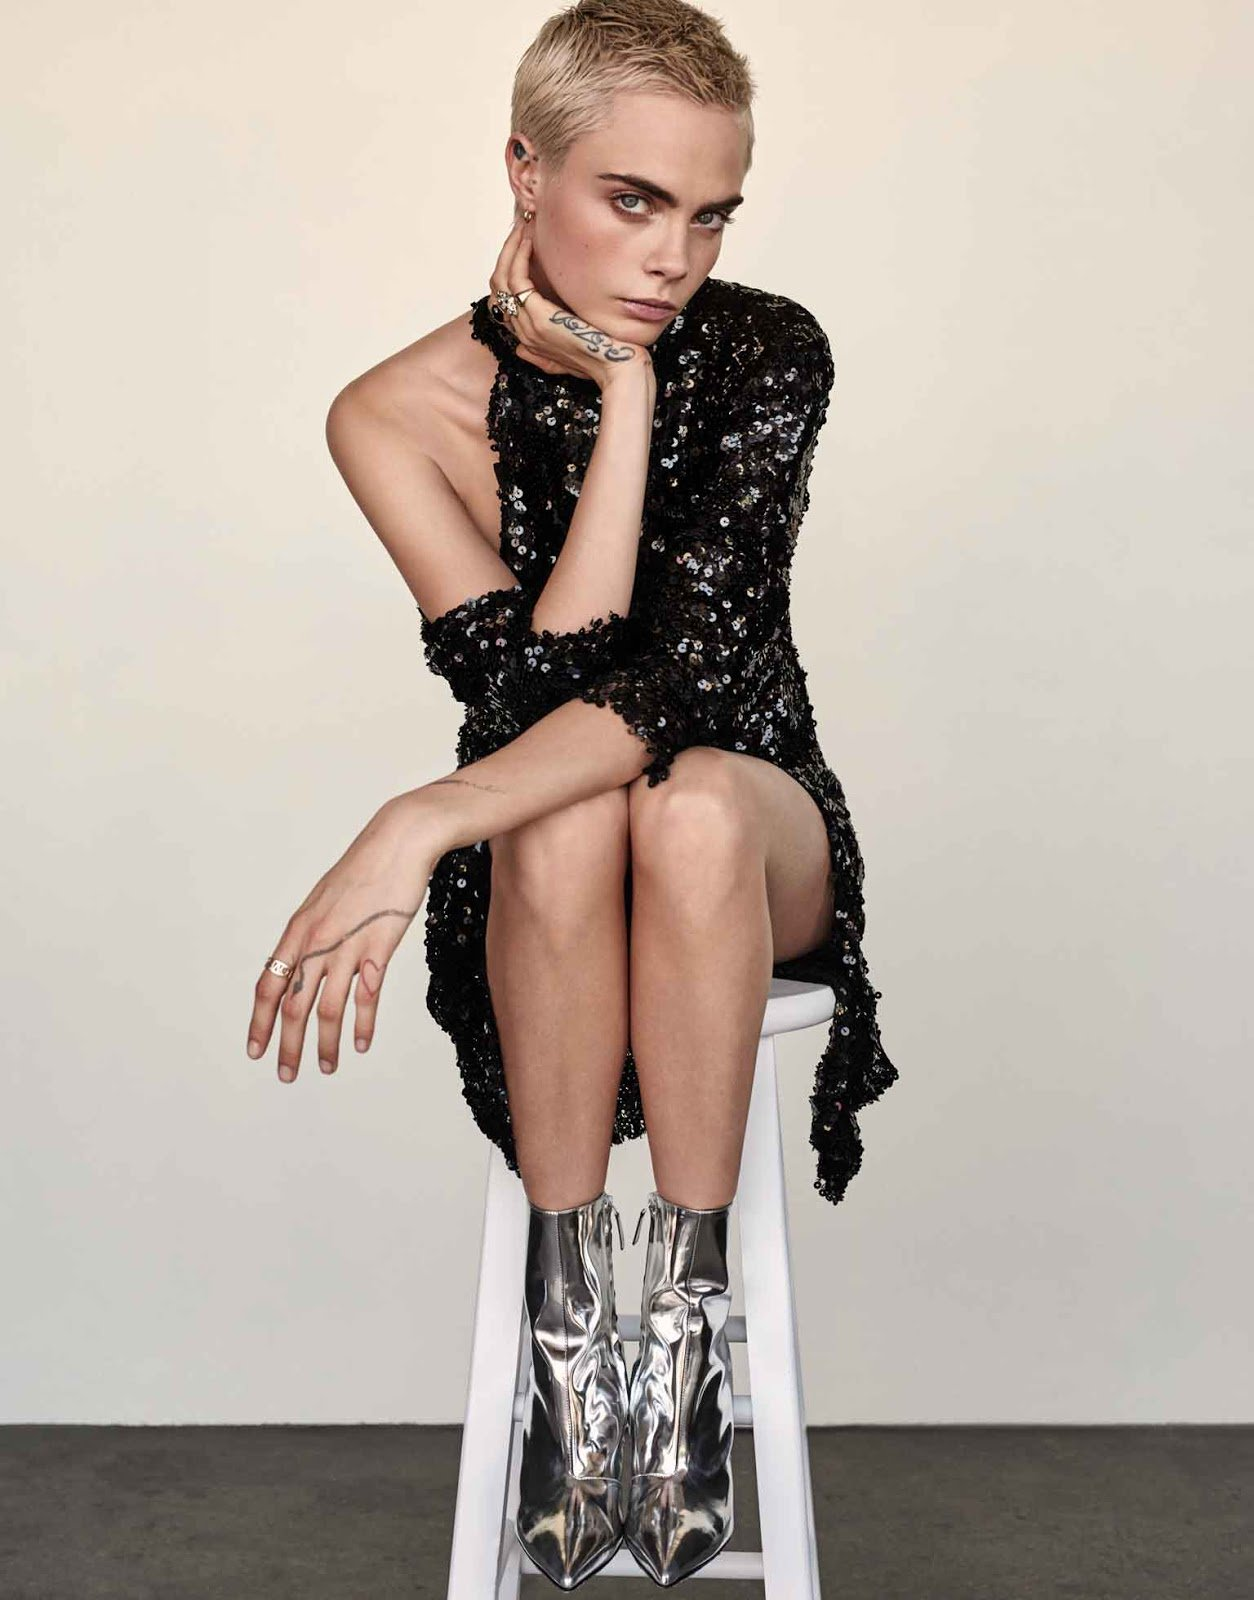 Cara Delevingne photo #813284